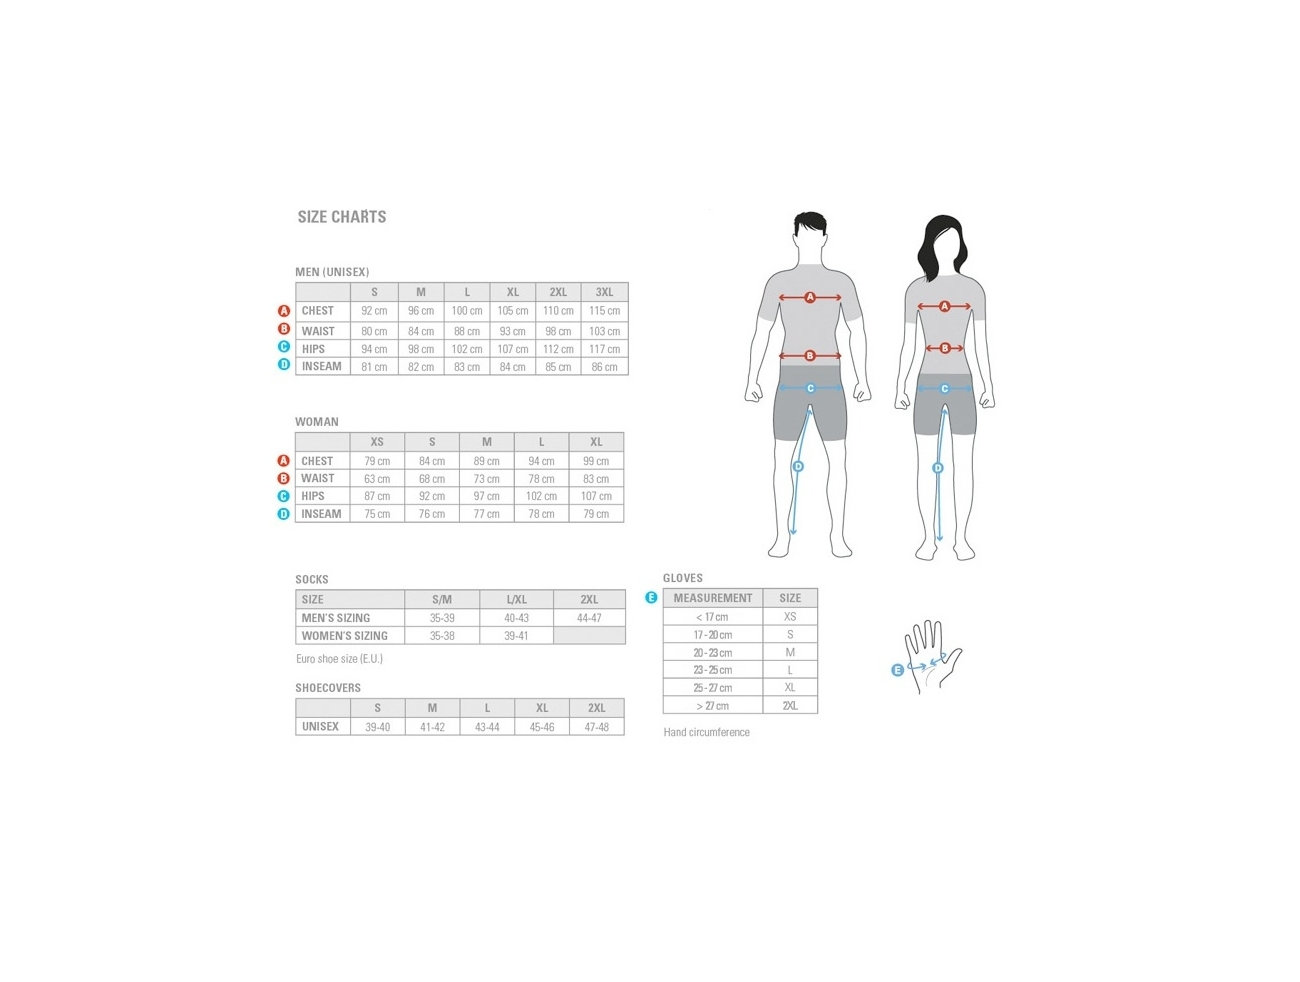 3T apparel sizing chart